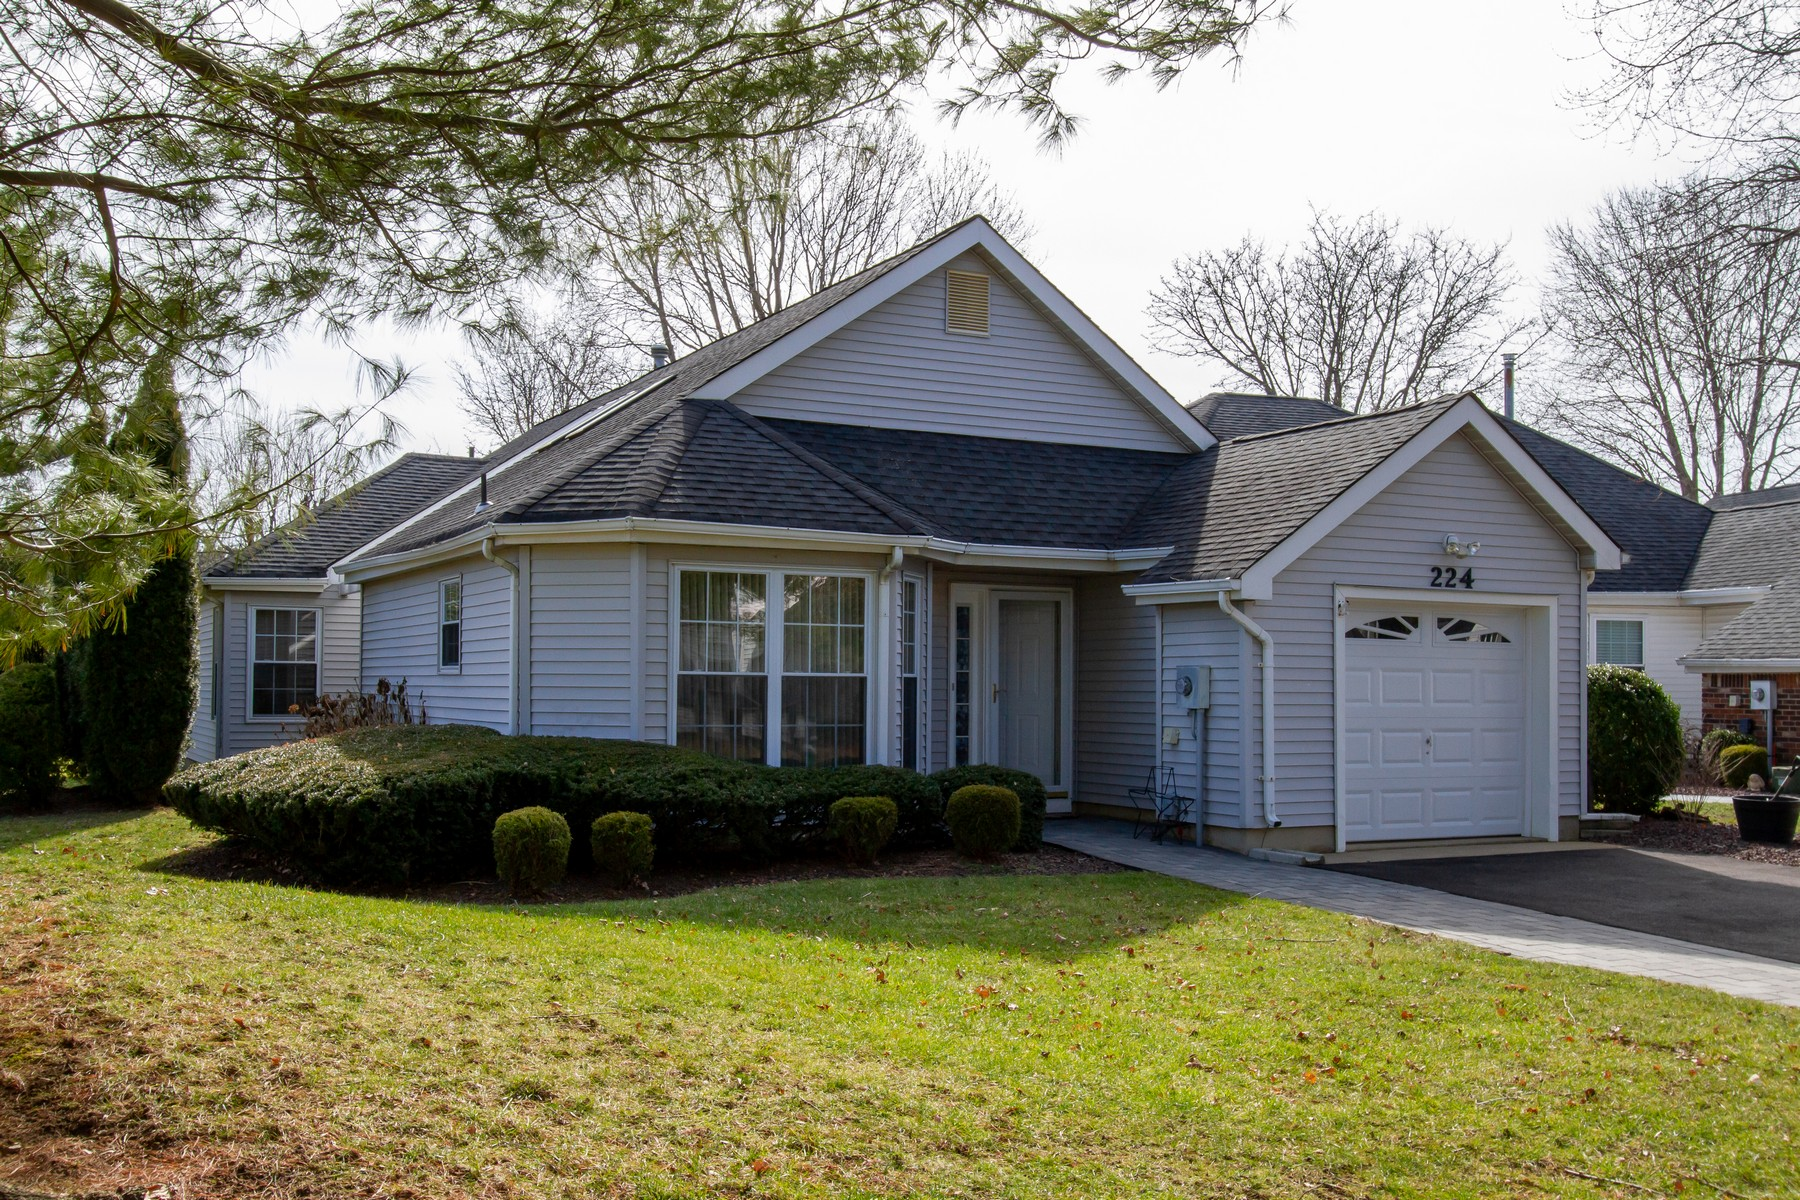 Single Family Homes for Sale at Spacious Ranch on Corner Lot 224 Loganberry Lane Freehold, New Jersey 07728 United States